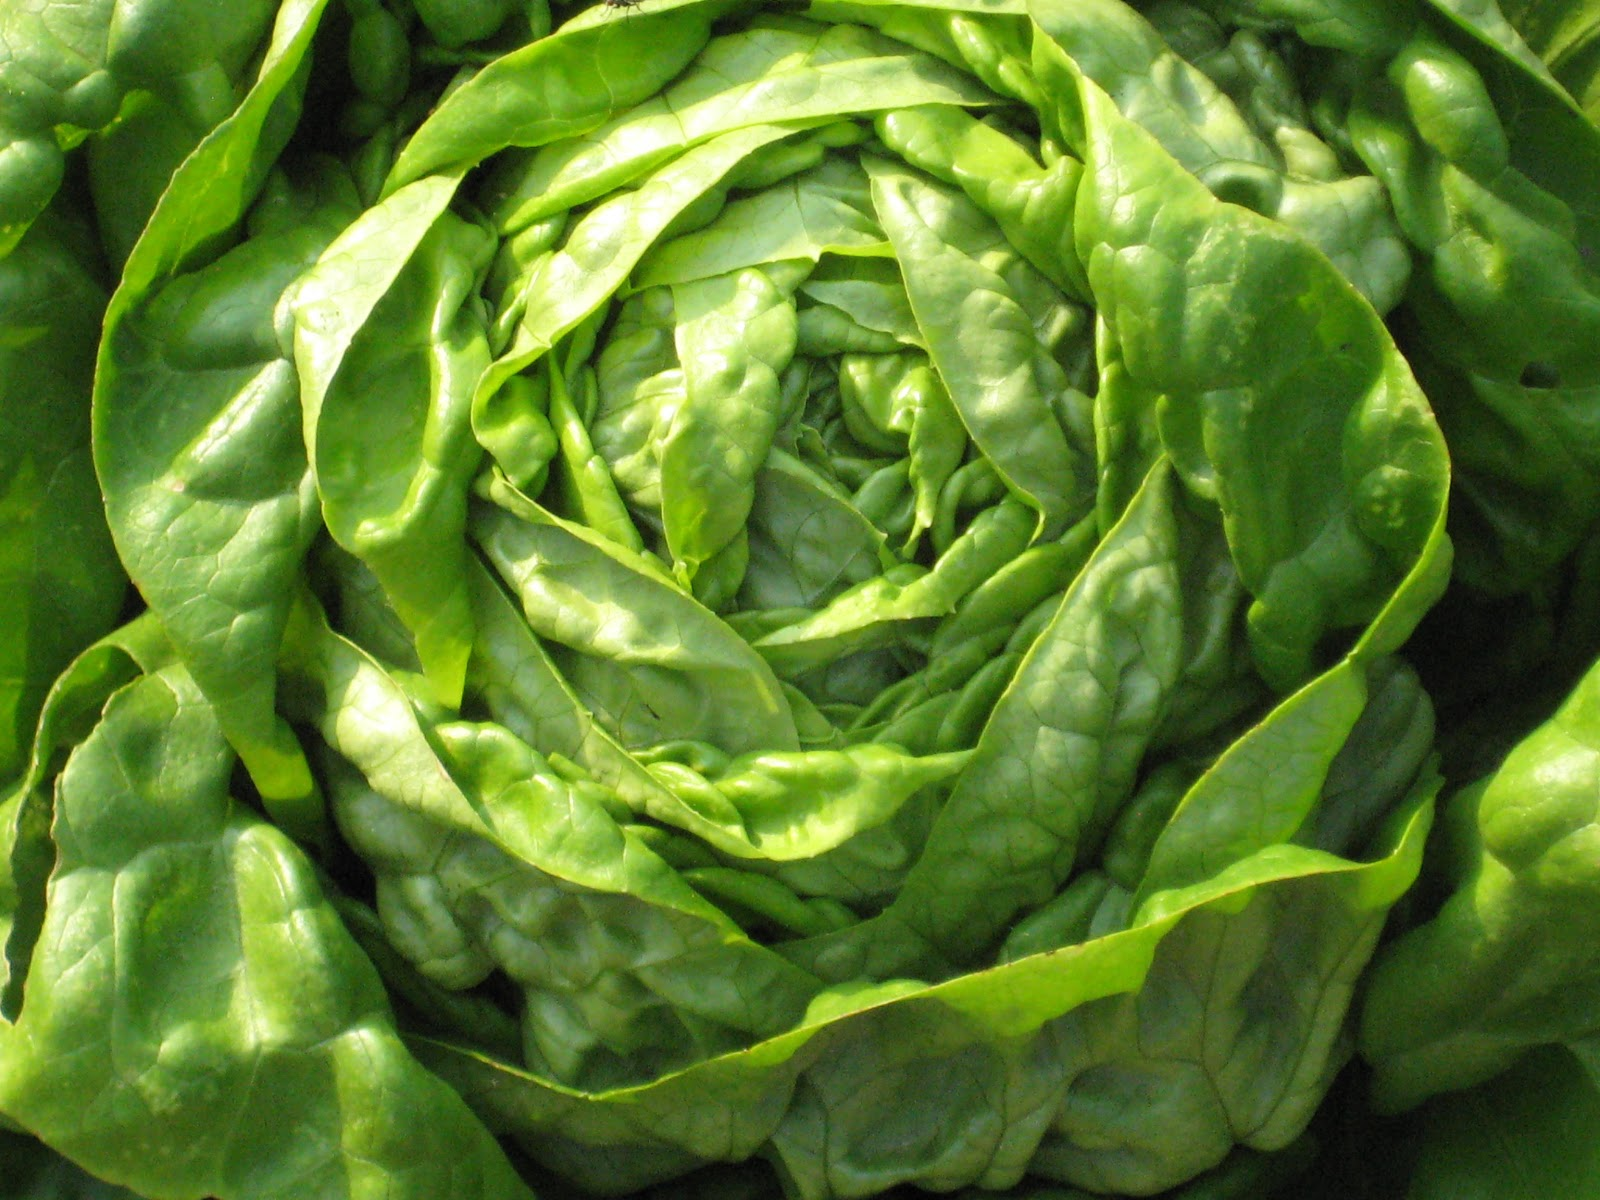 My favorite lettuces a...